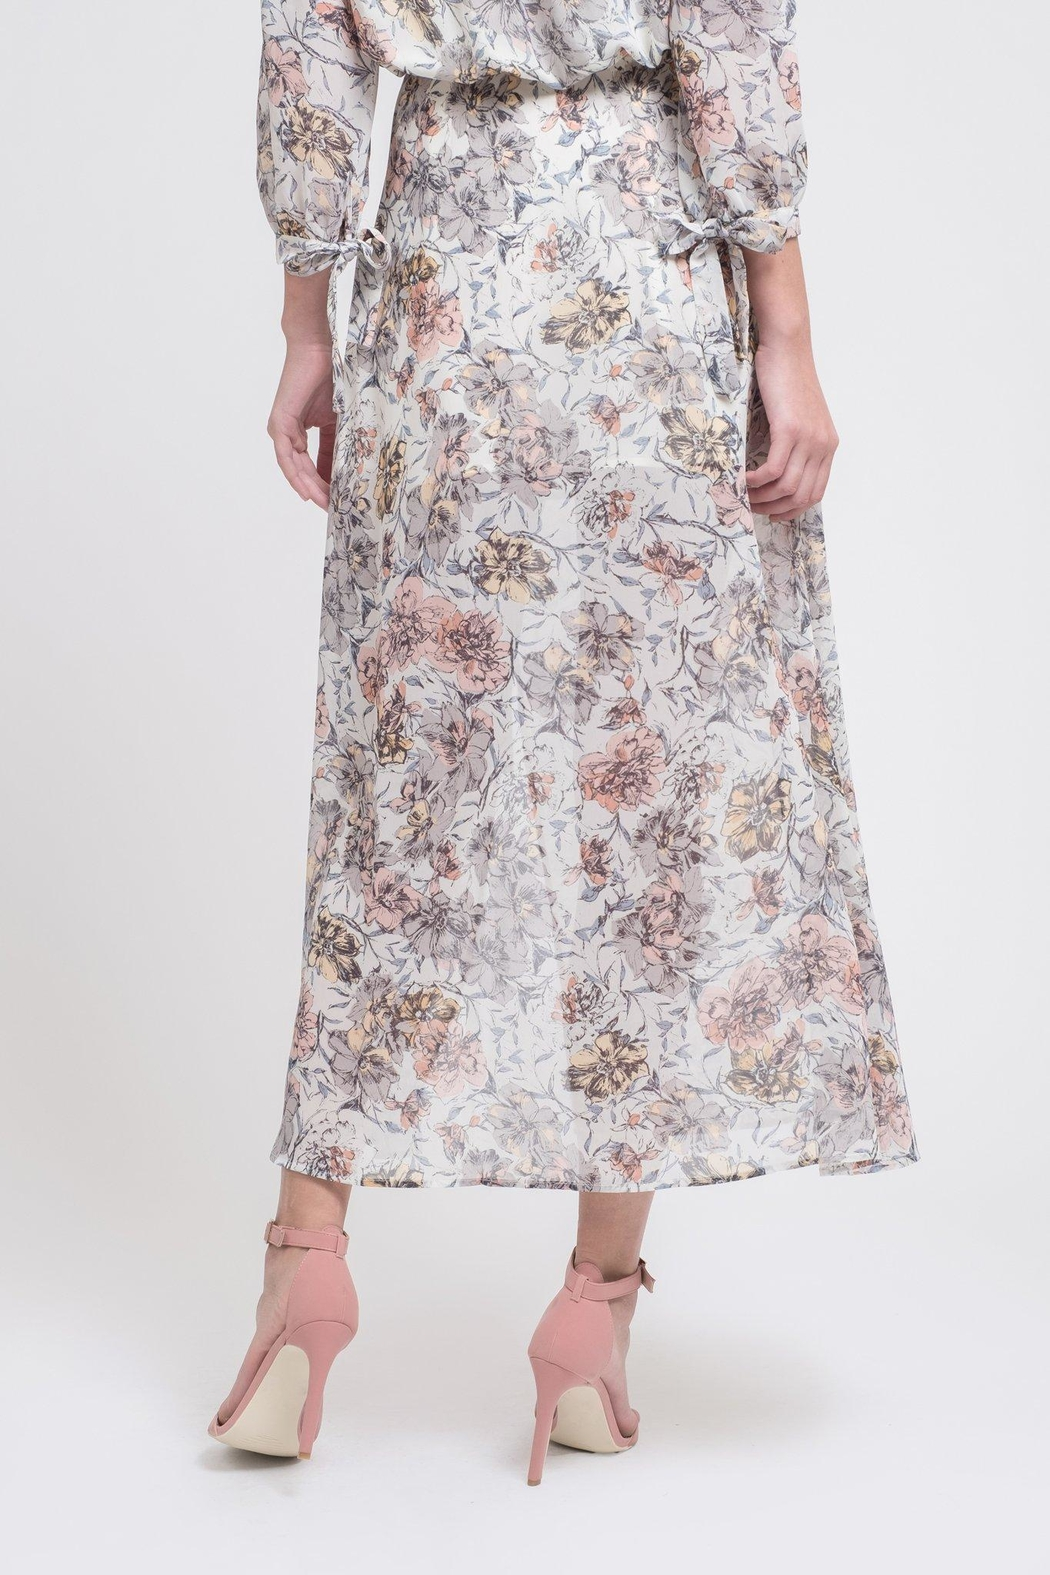 J.O.A. Floral Maxi Skirt - Side Cropped Image